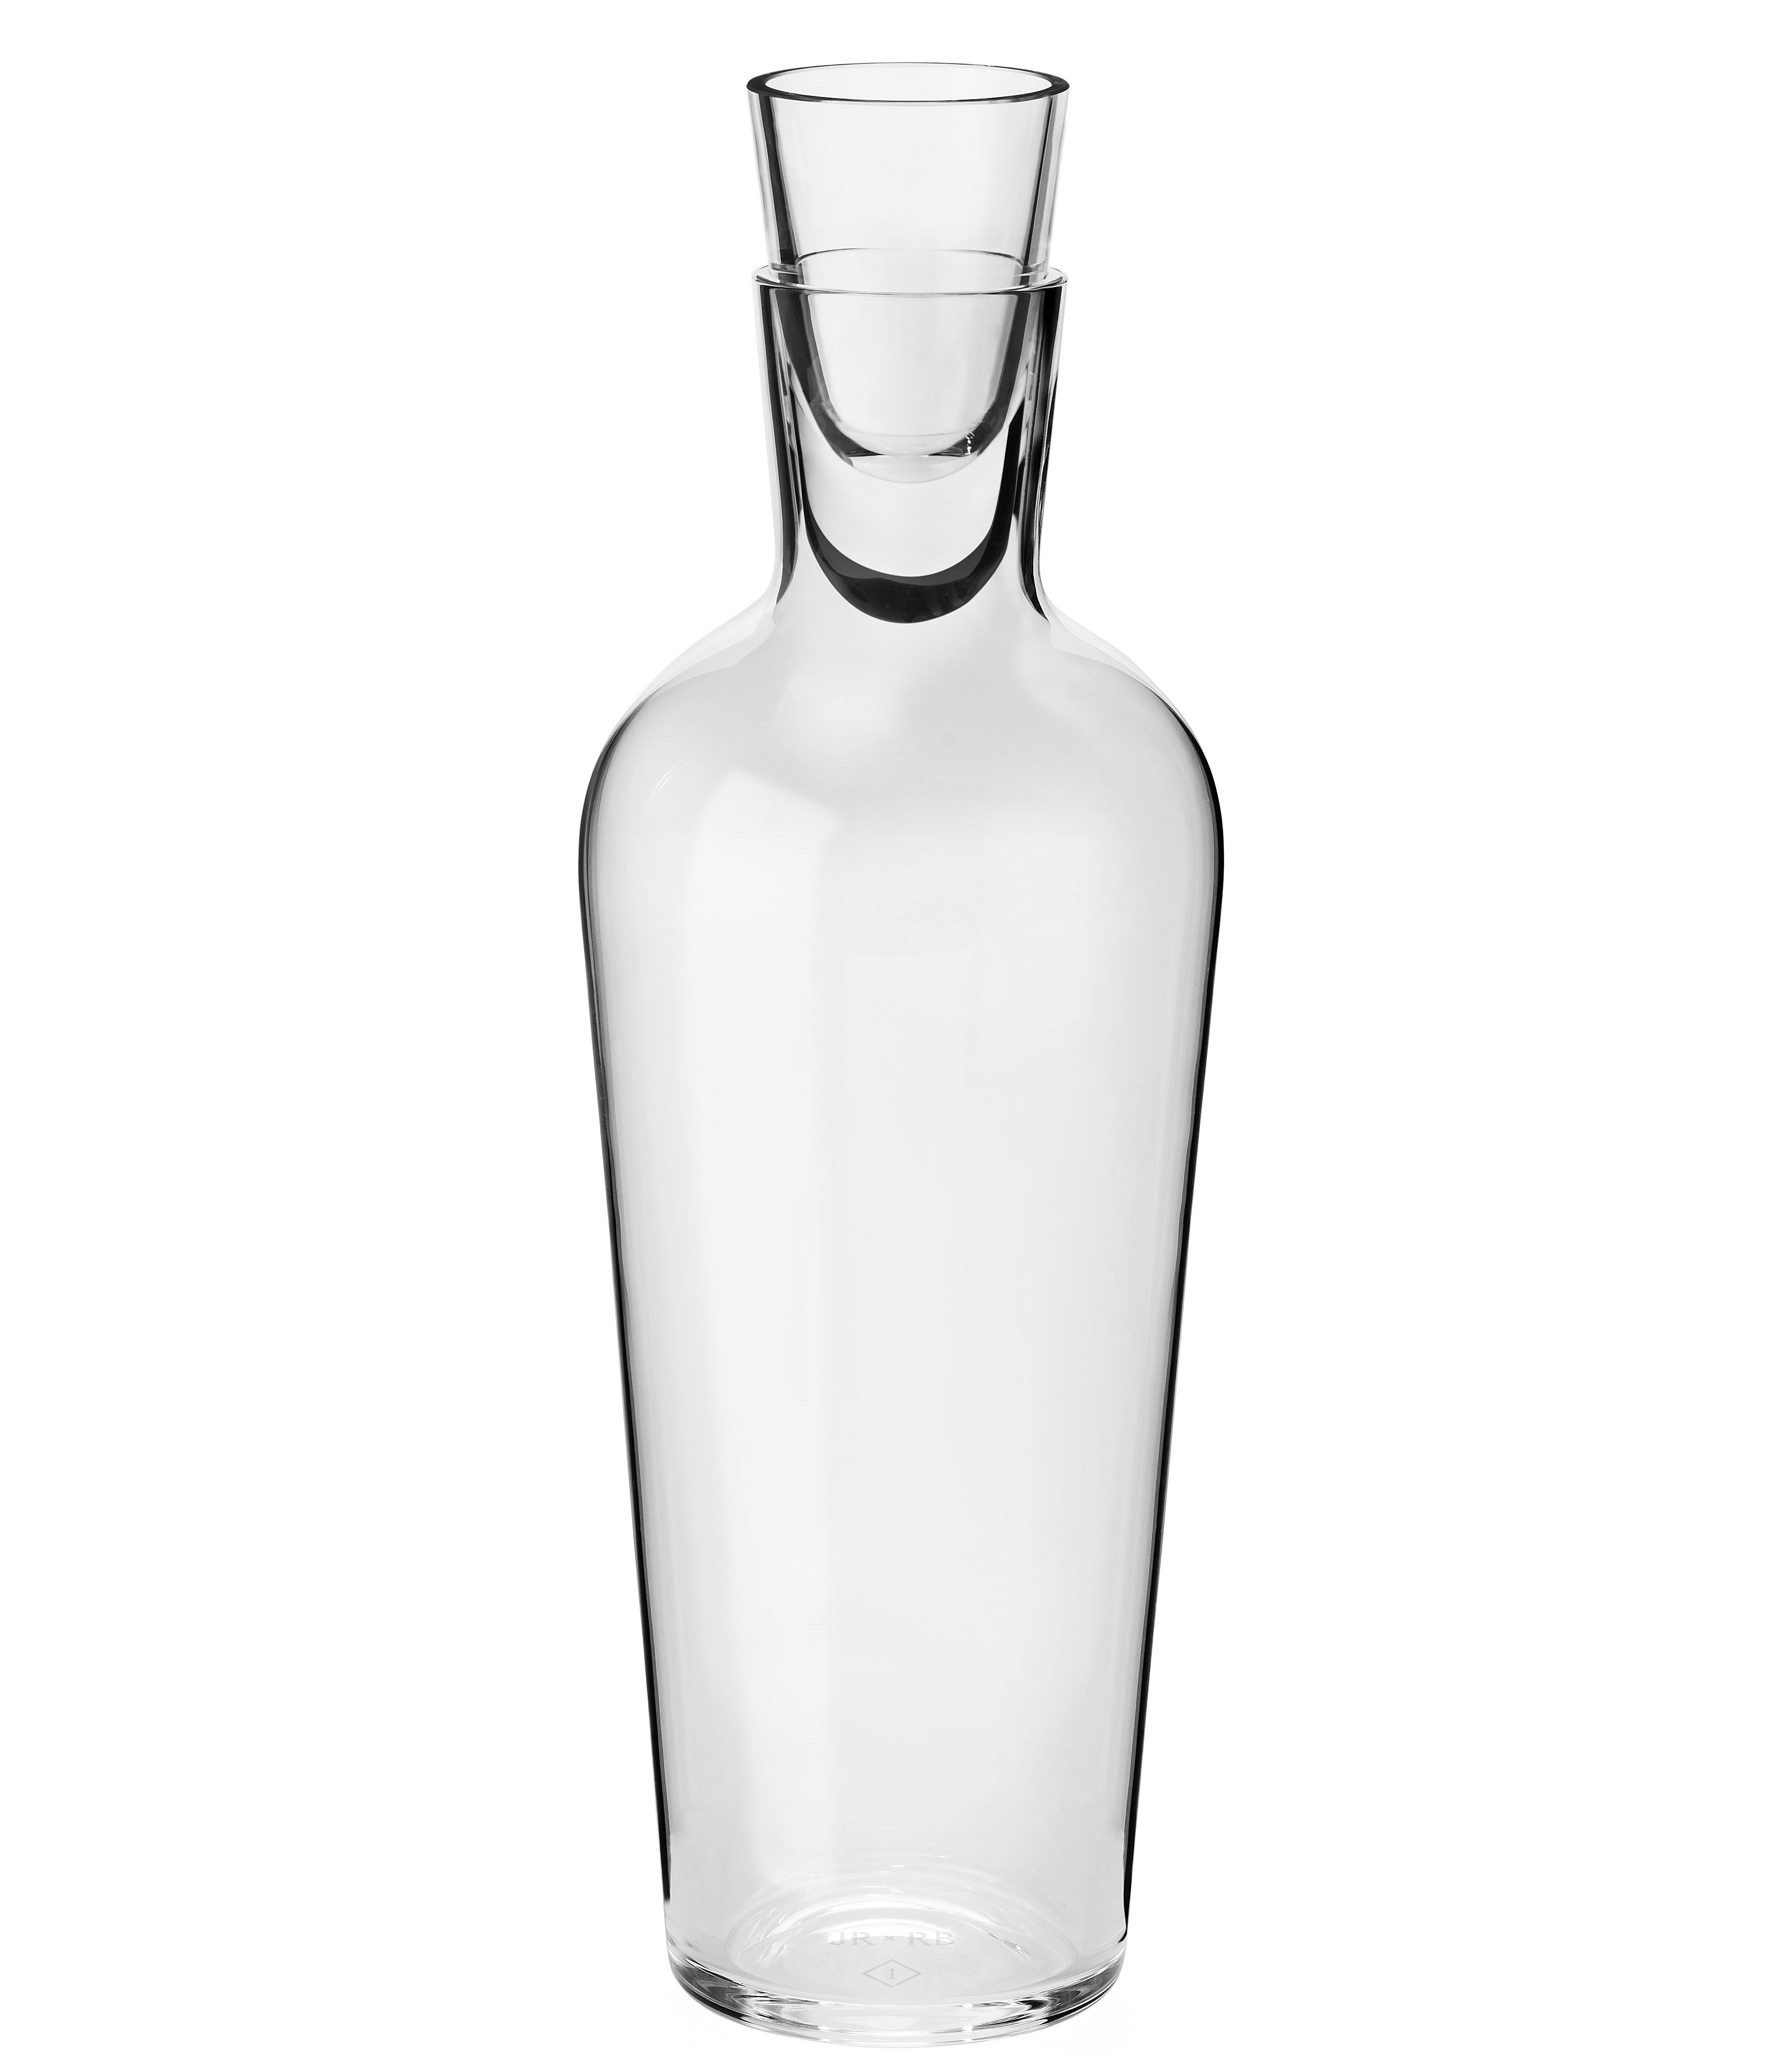 Jancis Robinson The Mature Wine Decanter Gift Product Image